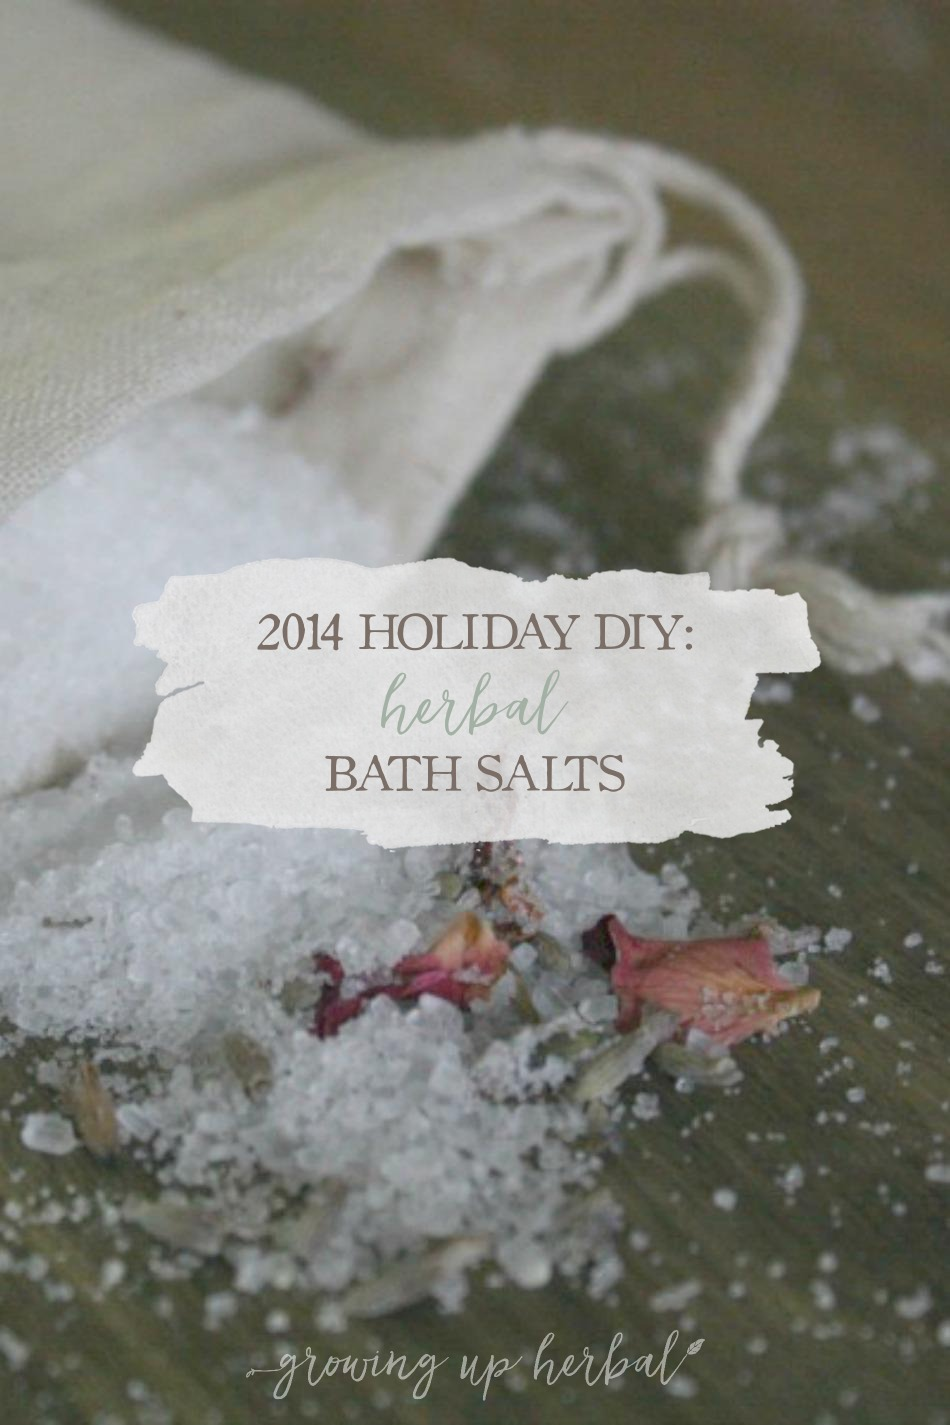 2014 DIY Holiday: Herbal Bath Salts   Growing Up Herbal   Three blends of herbal bath salts sure to make for a great handmade holiday gift!